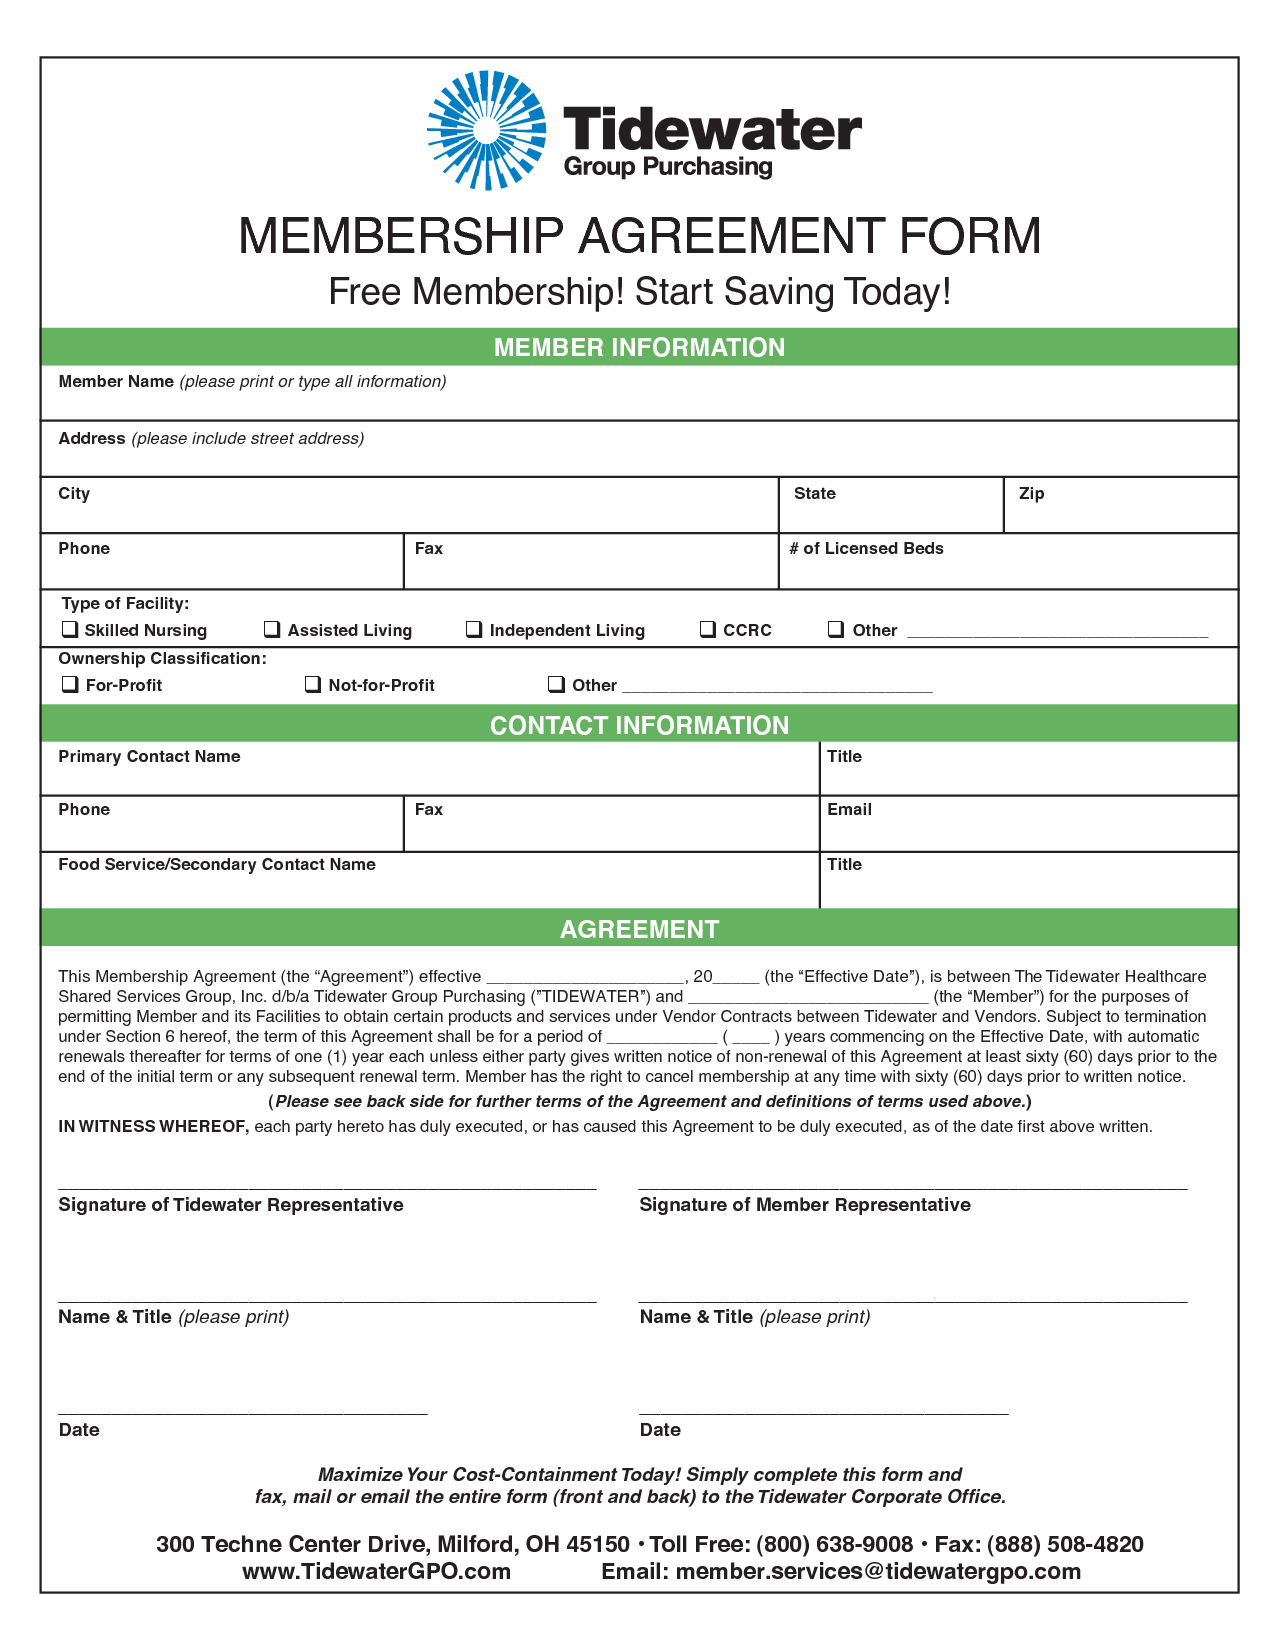 Membership agreement template invitation templates membership membership agreement template invitation templates membership agreement sample thecheapjerseys Choice Image